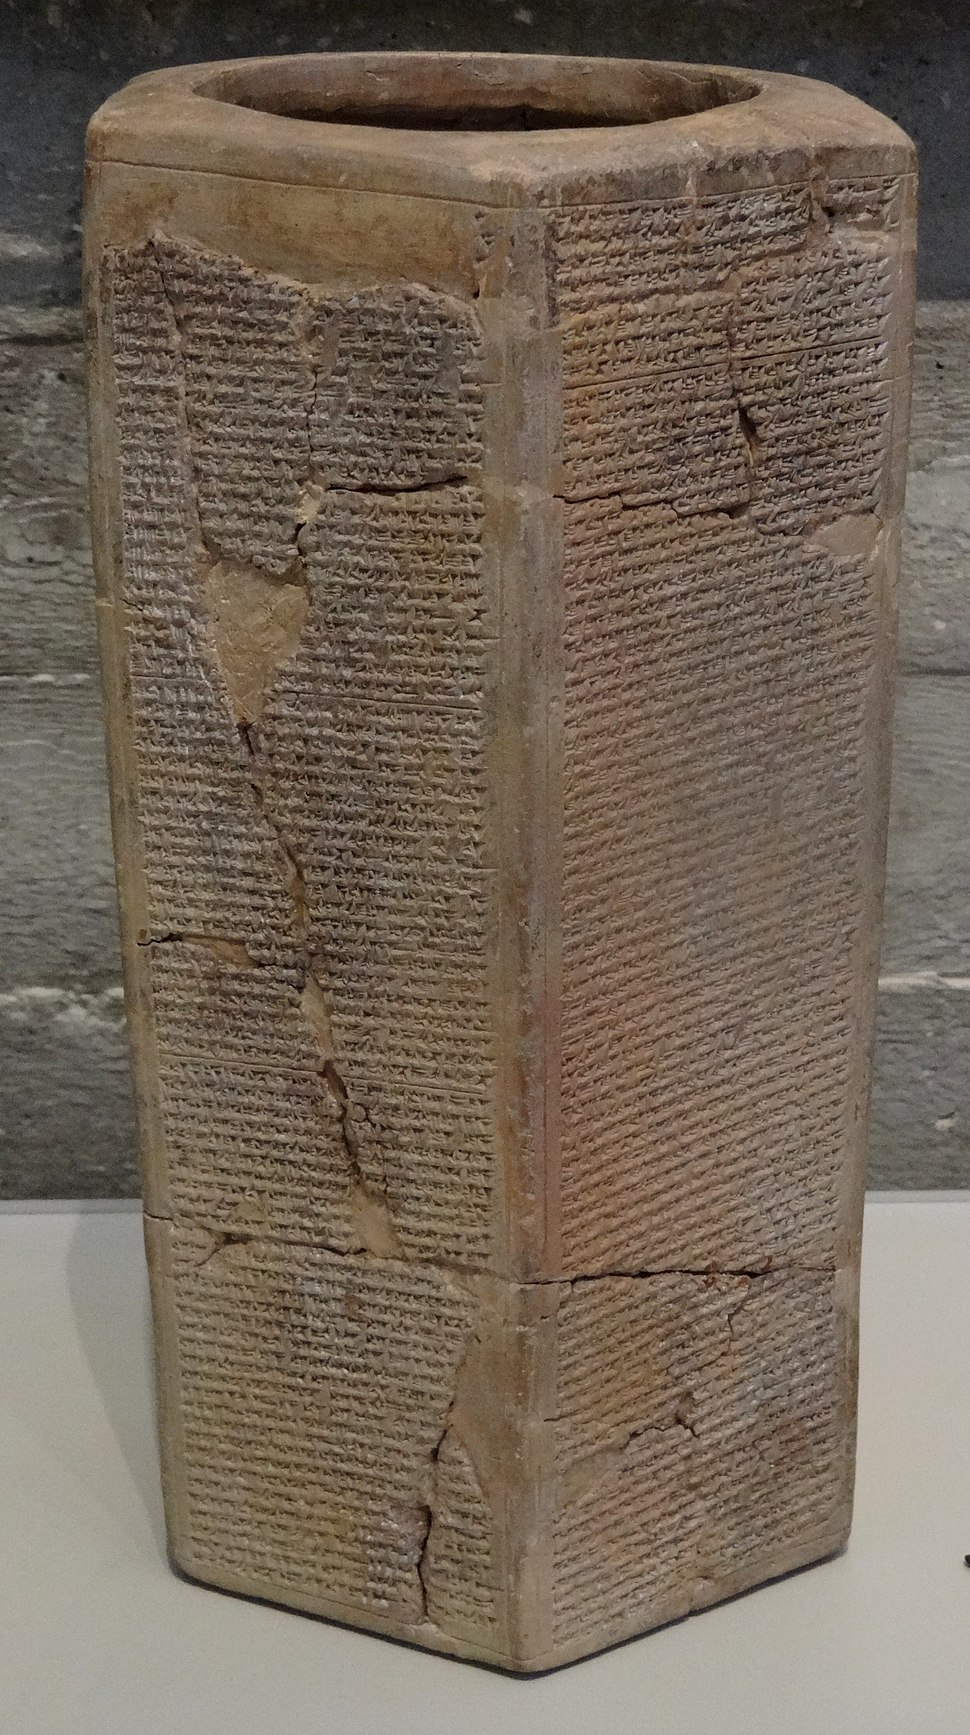 Sennacherib's Prism in the Israel Museum (2)